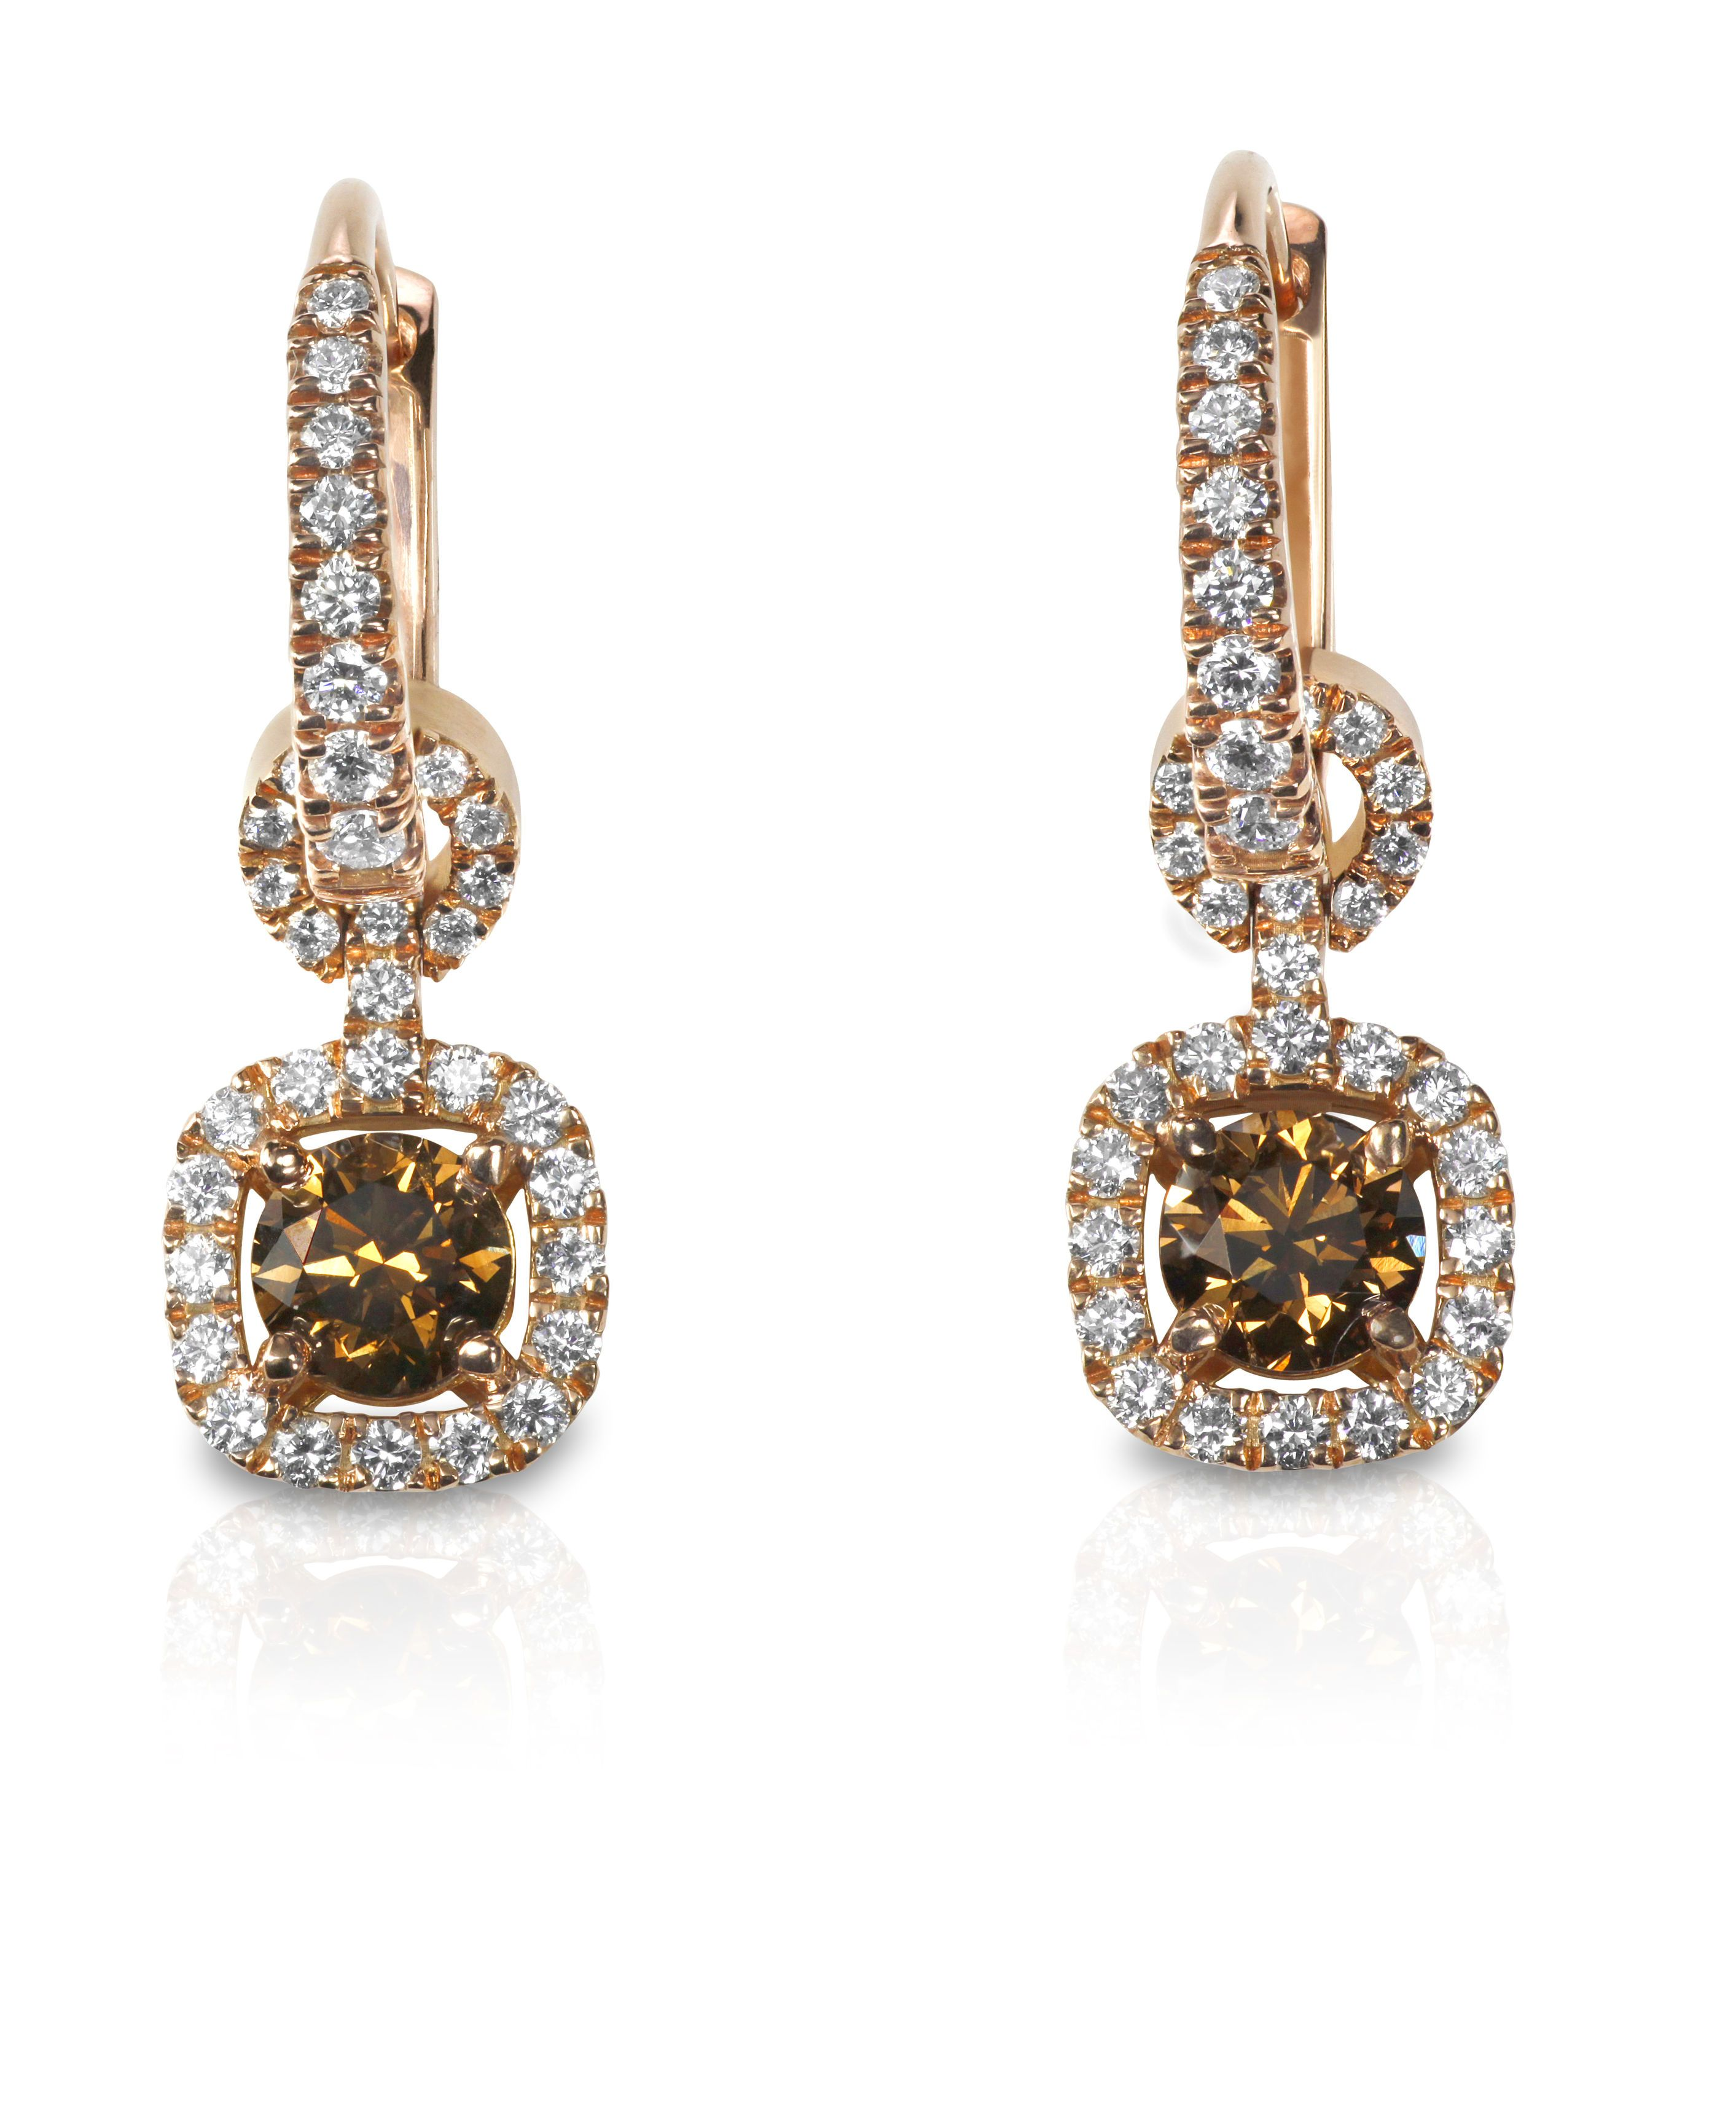 33+ Browns jewelry roswell ga ideas